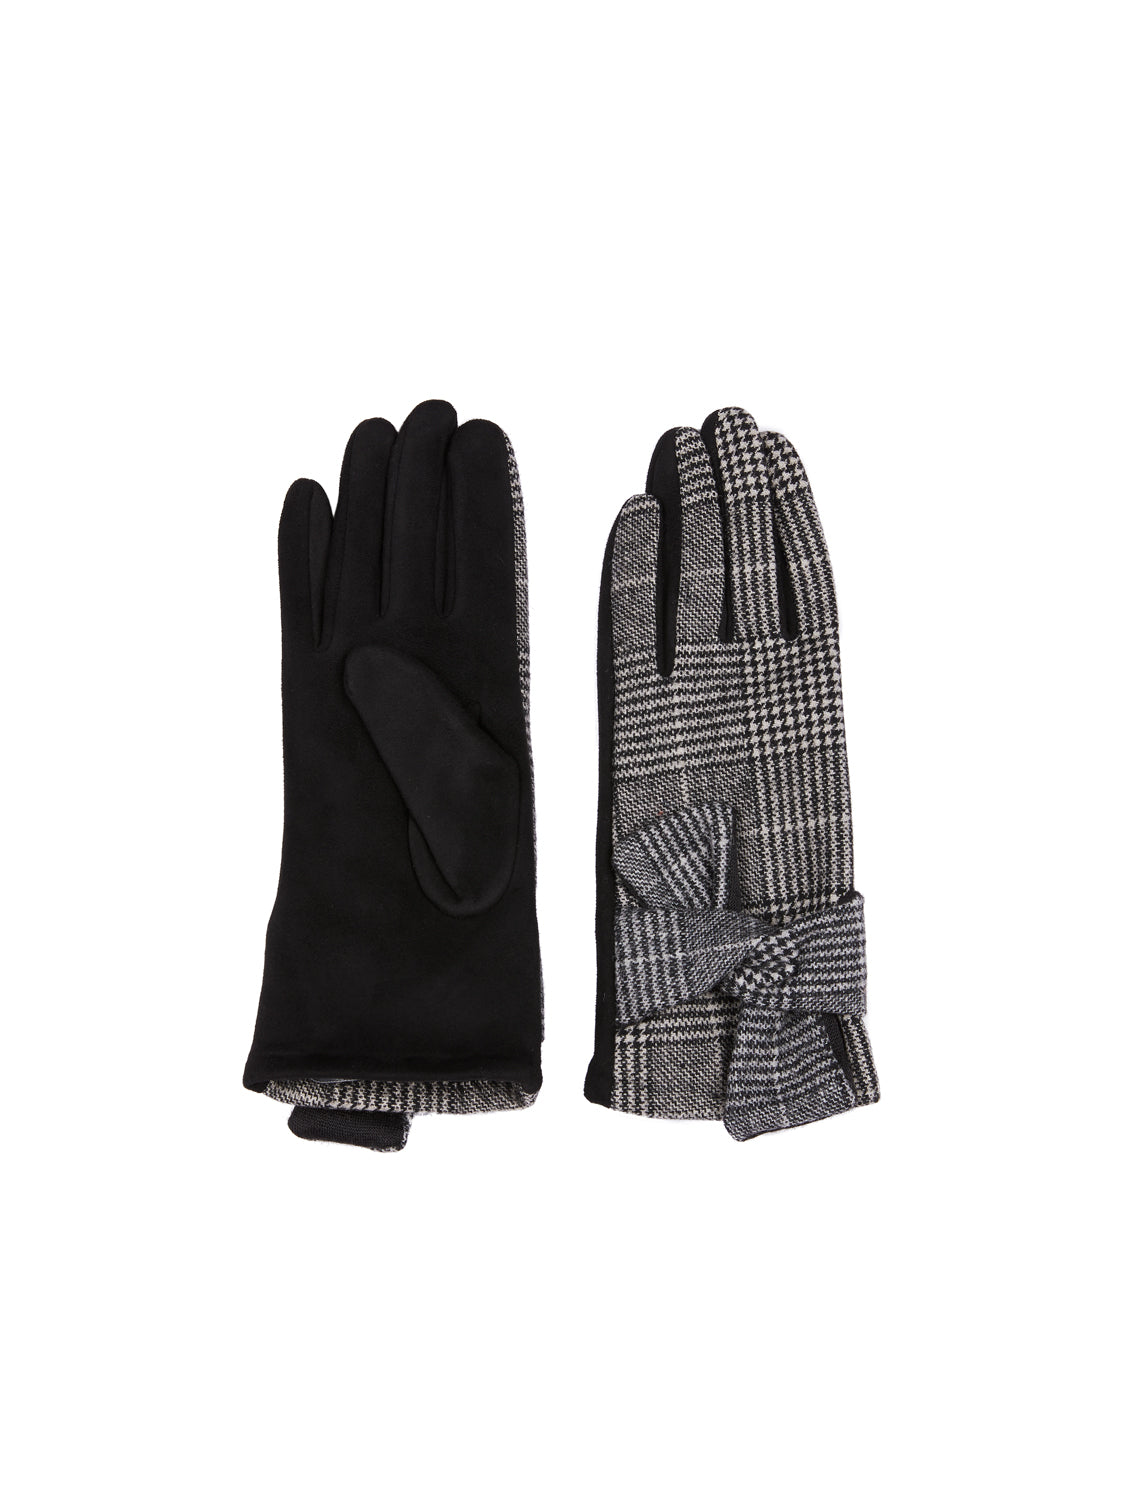 Glen Plaid Gloves